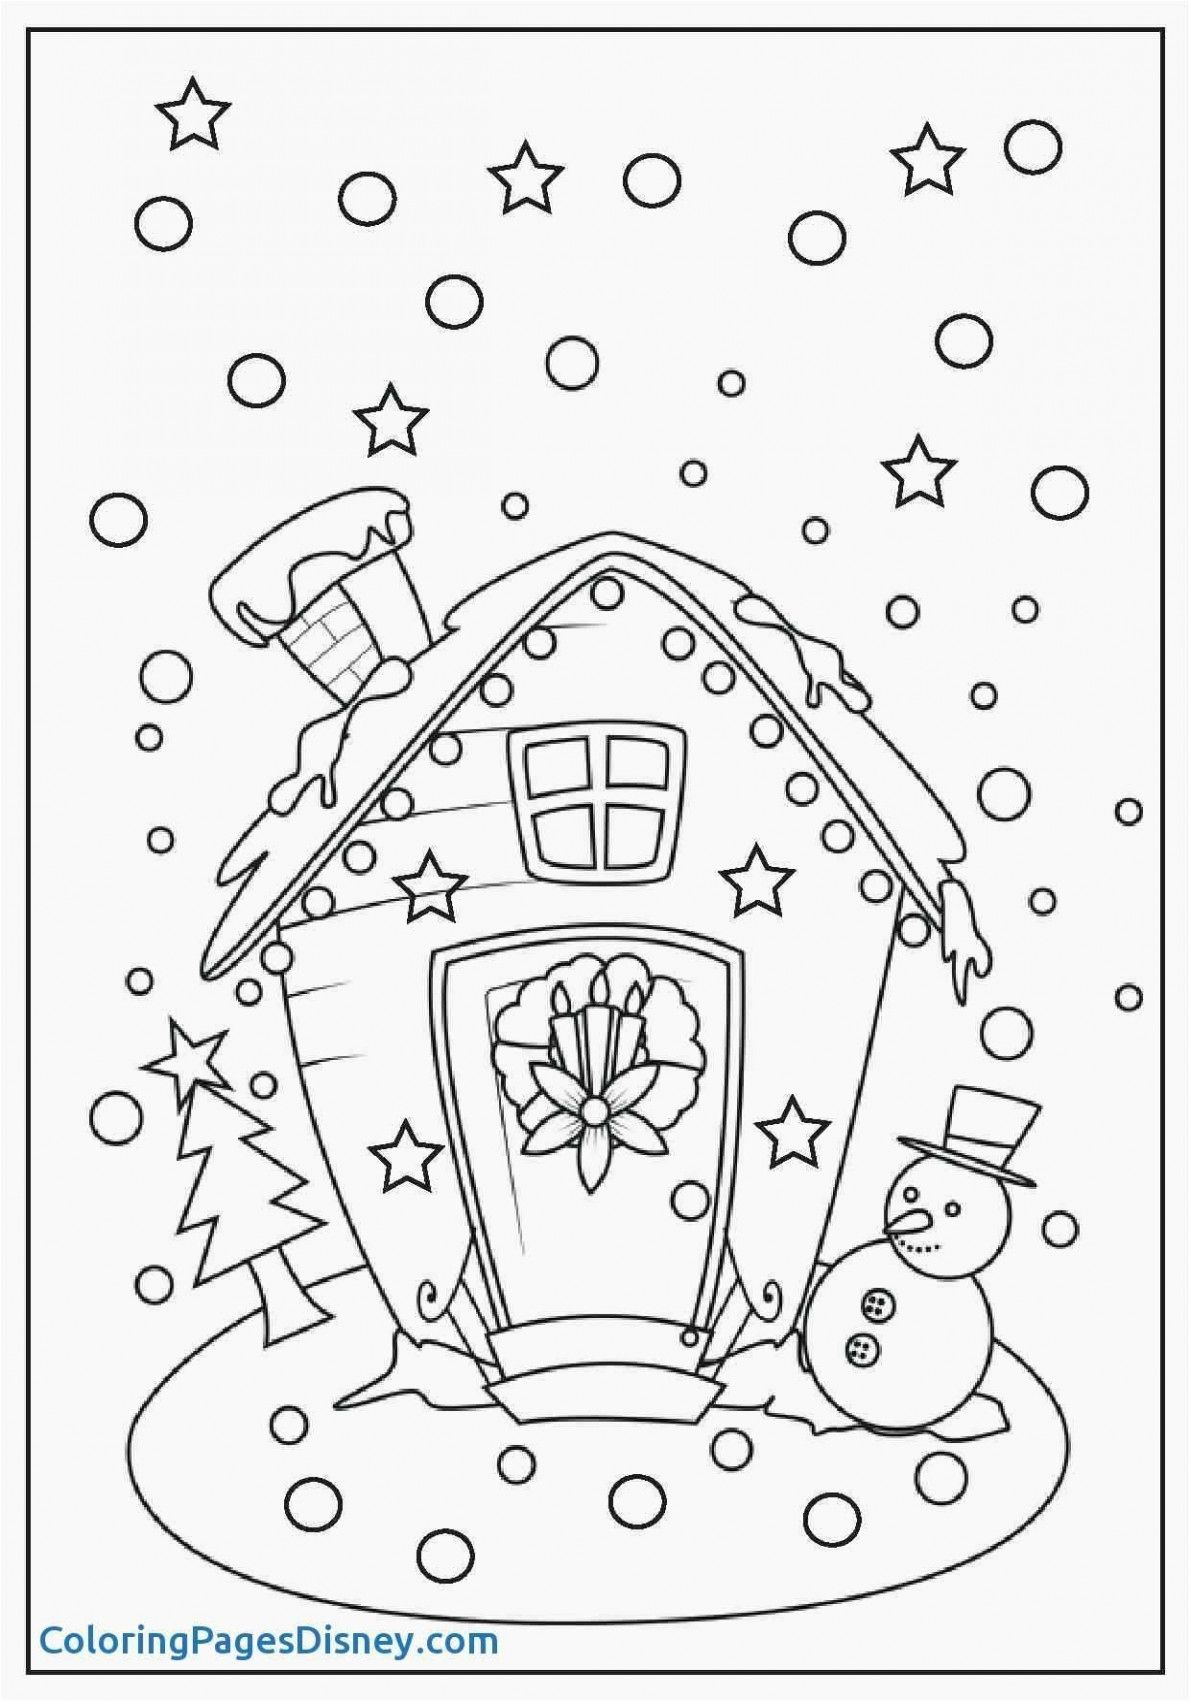 Coloring Pages Of Thank You Cards Printable Christmas Coloring Pages Free Christmas Coloring Pages Coloring Pages Inspirational